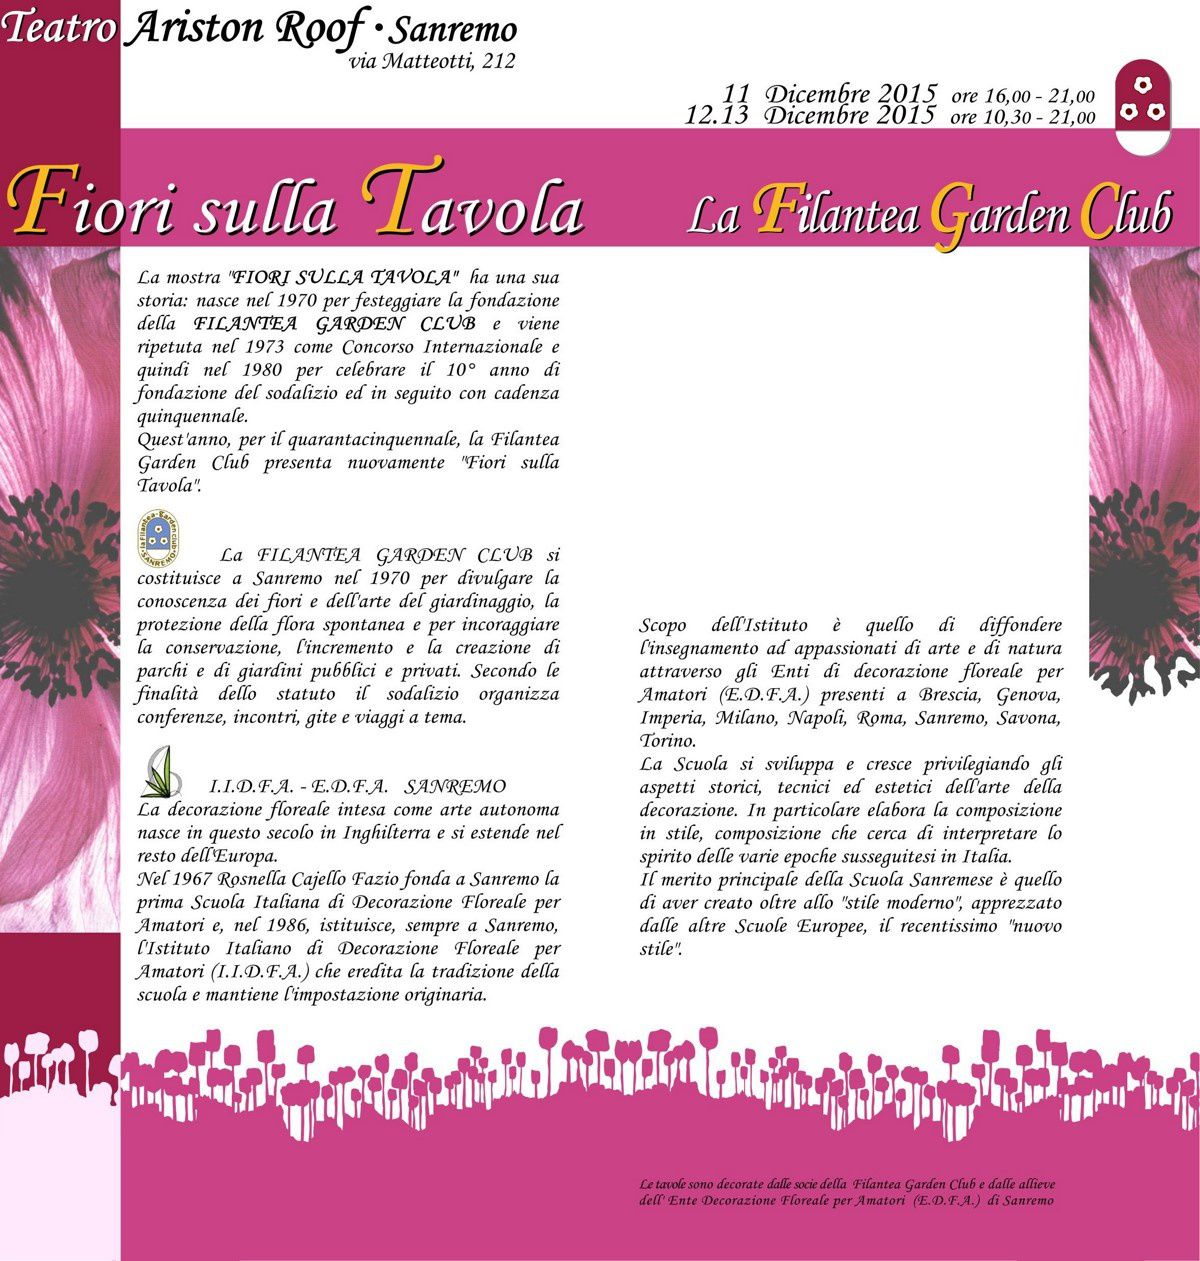 ARISTON SANREMO: LA FILANTEA GARDEN CLUB